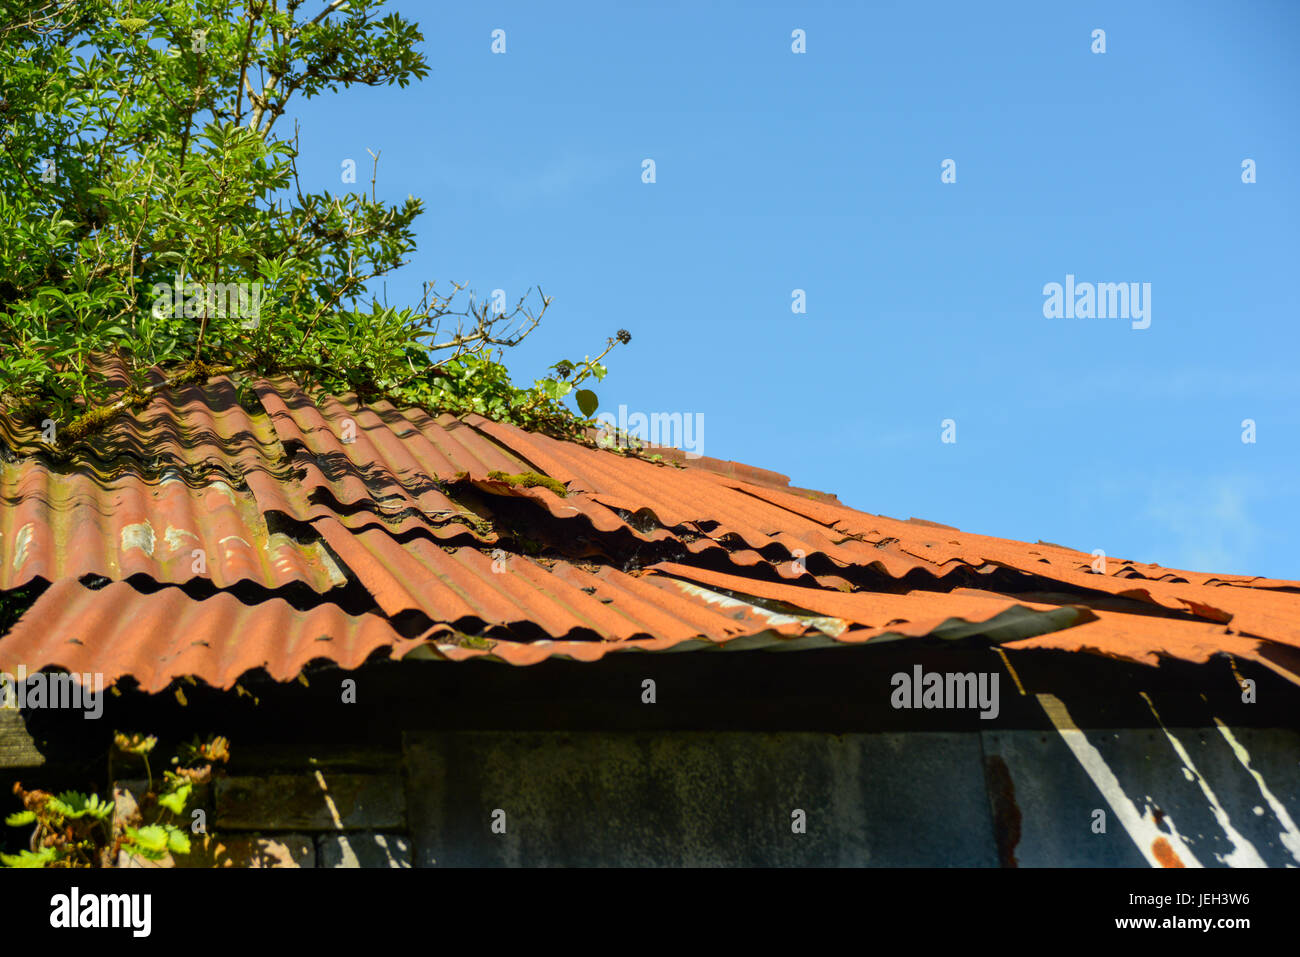 Rusted corrugated metal roof on farm building. - Stock Image